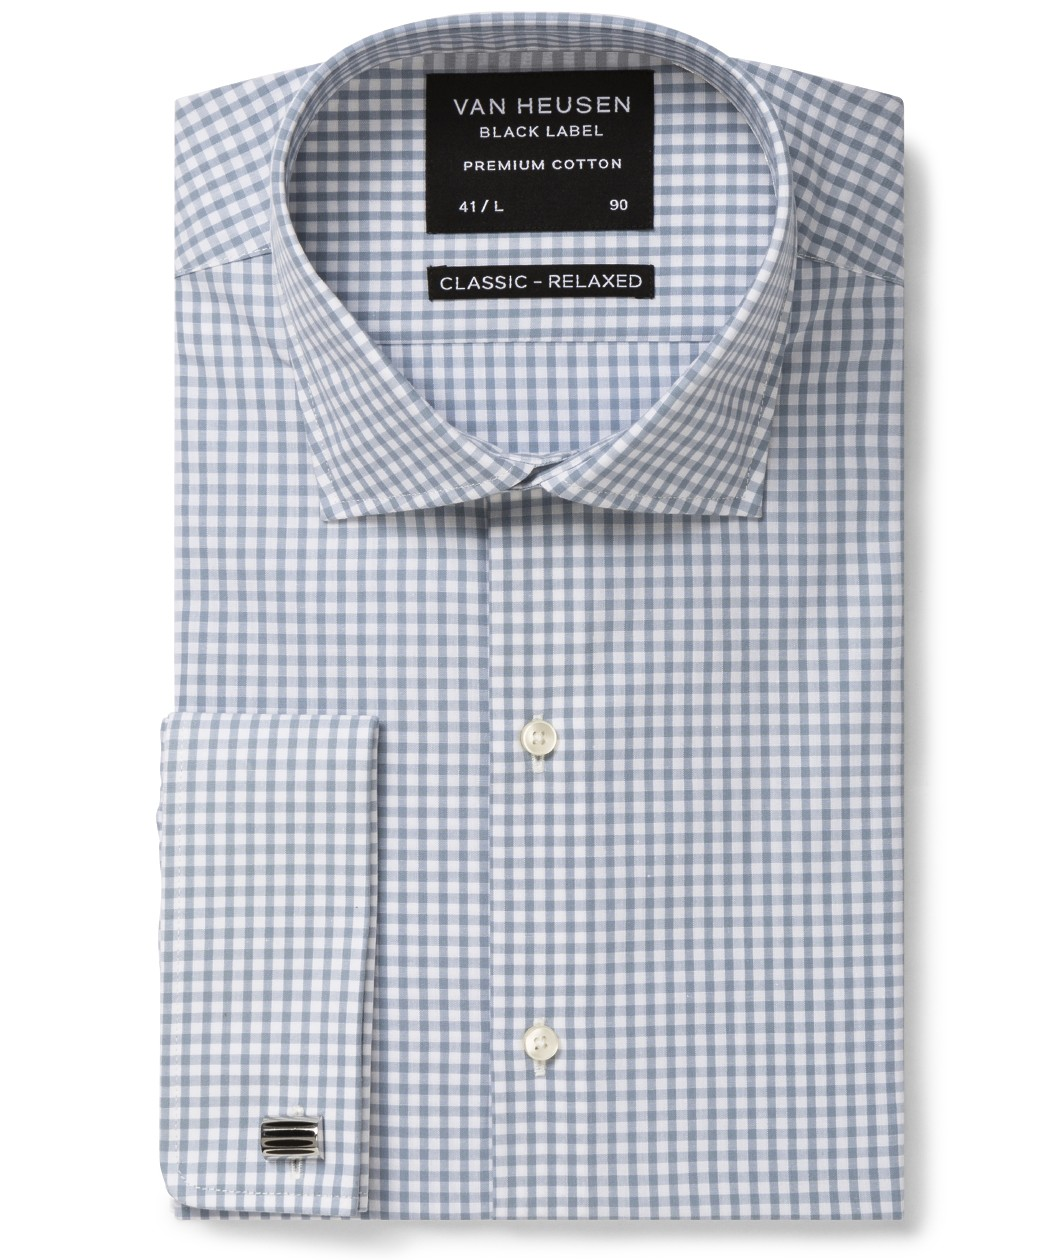 7e13ee056d Van Heusen. Black Label Classic Relaxed Fit Shirt Grey Gingham